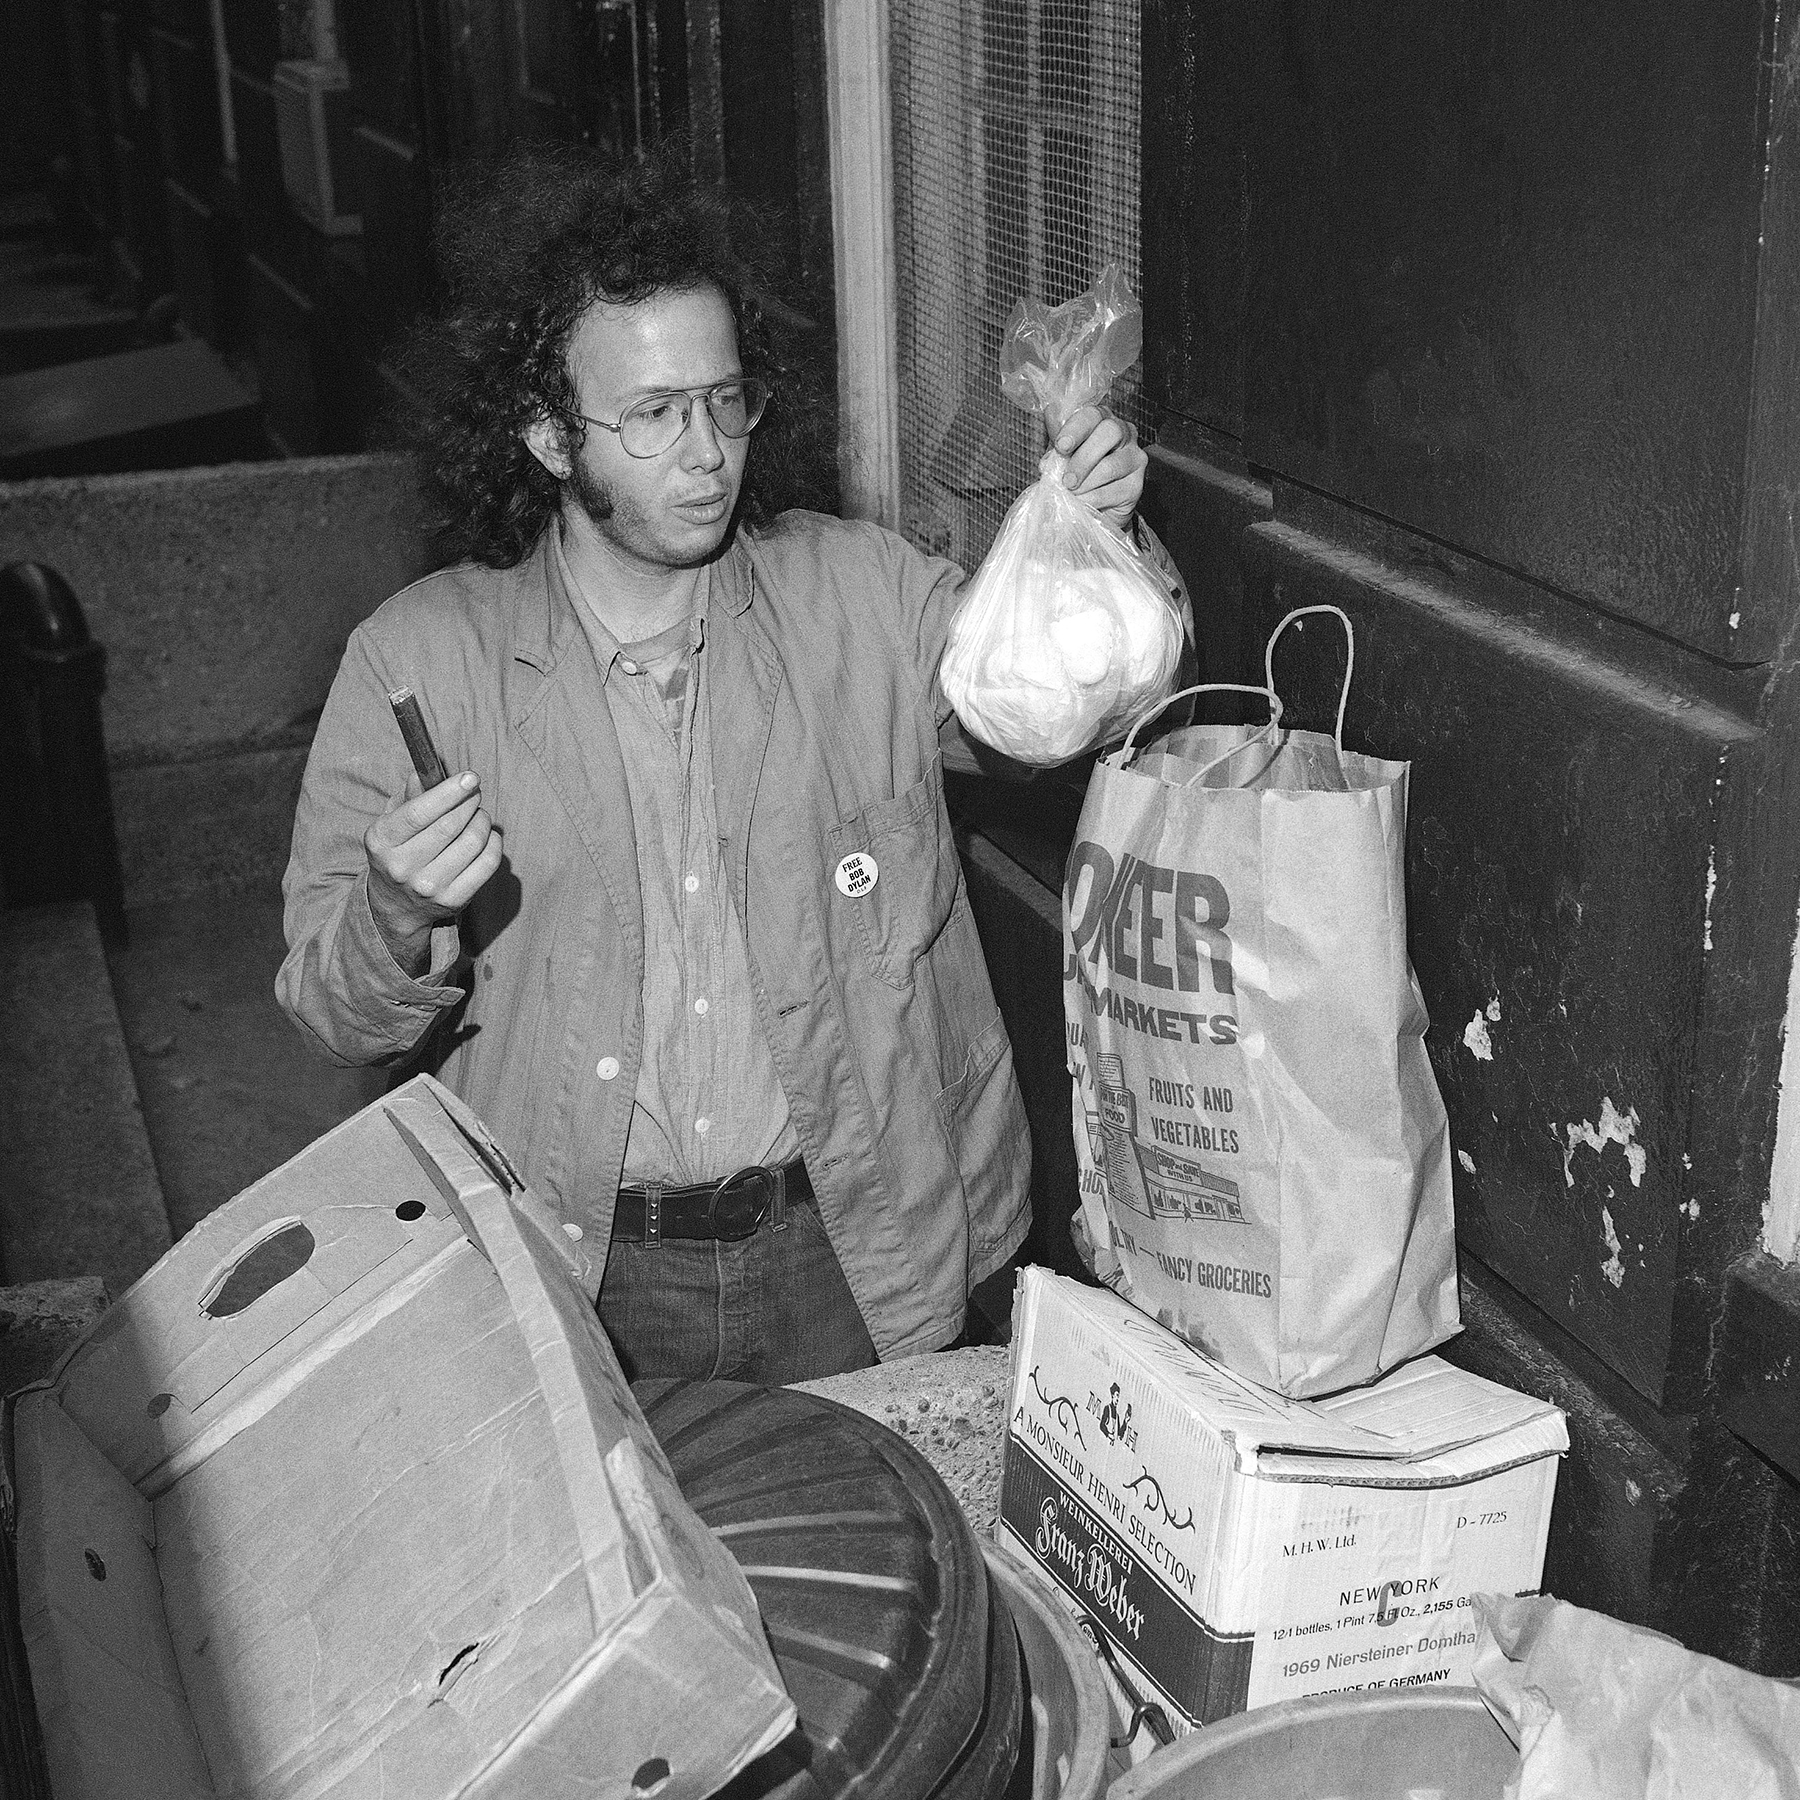 Self proclaimed yippie, Alan J. Weberman, pursues a new kind of sidewalk research: analyzing garbage, outside the home of singer-poet Bob Dylan in New York on Oct. 12, 1971. He holds an unsmoked cigar and a plastic bag full of diapers. Weberman claims his garbage research gives an added, if somewhat unusual, insight into the lives of personages.(AP Photo/Anthony Camerano)